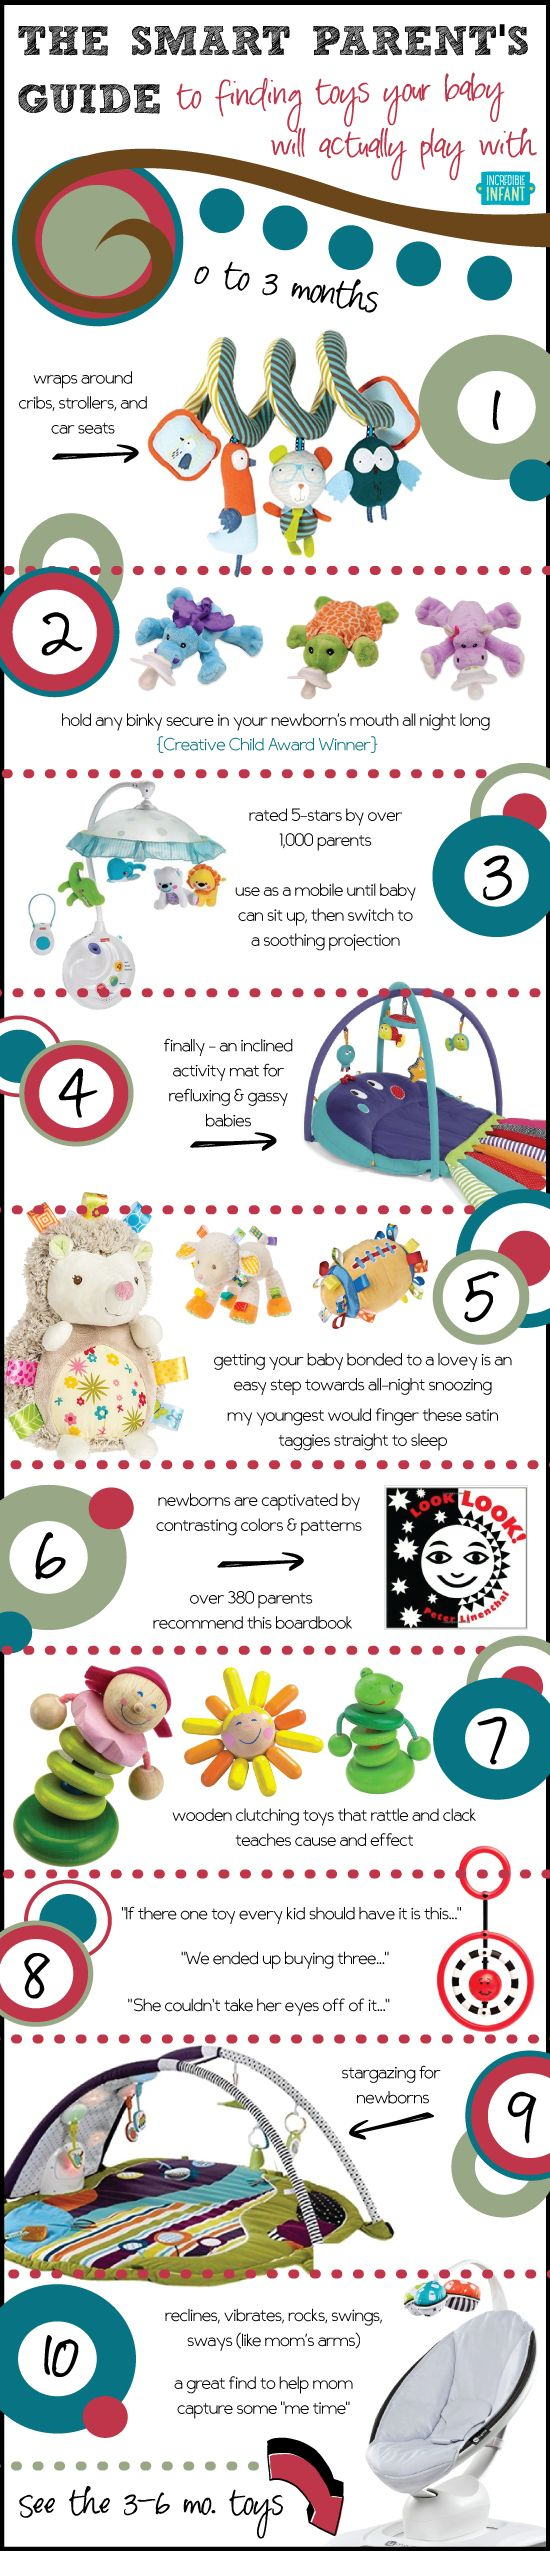 Best crib toys your baby - Baby Toys The Smart Parent S Guide To Finding Toys Your Baby Will Actually Play With From 0 To 3 Months By Incredible Infant Via Tipsographi